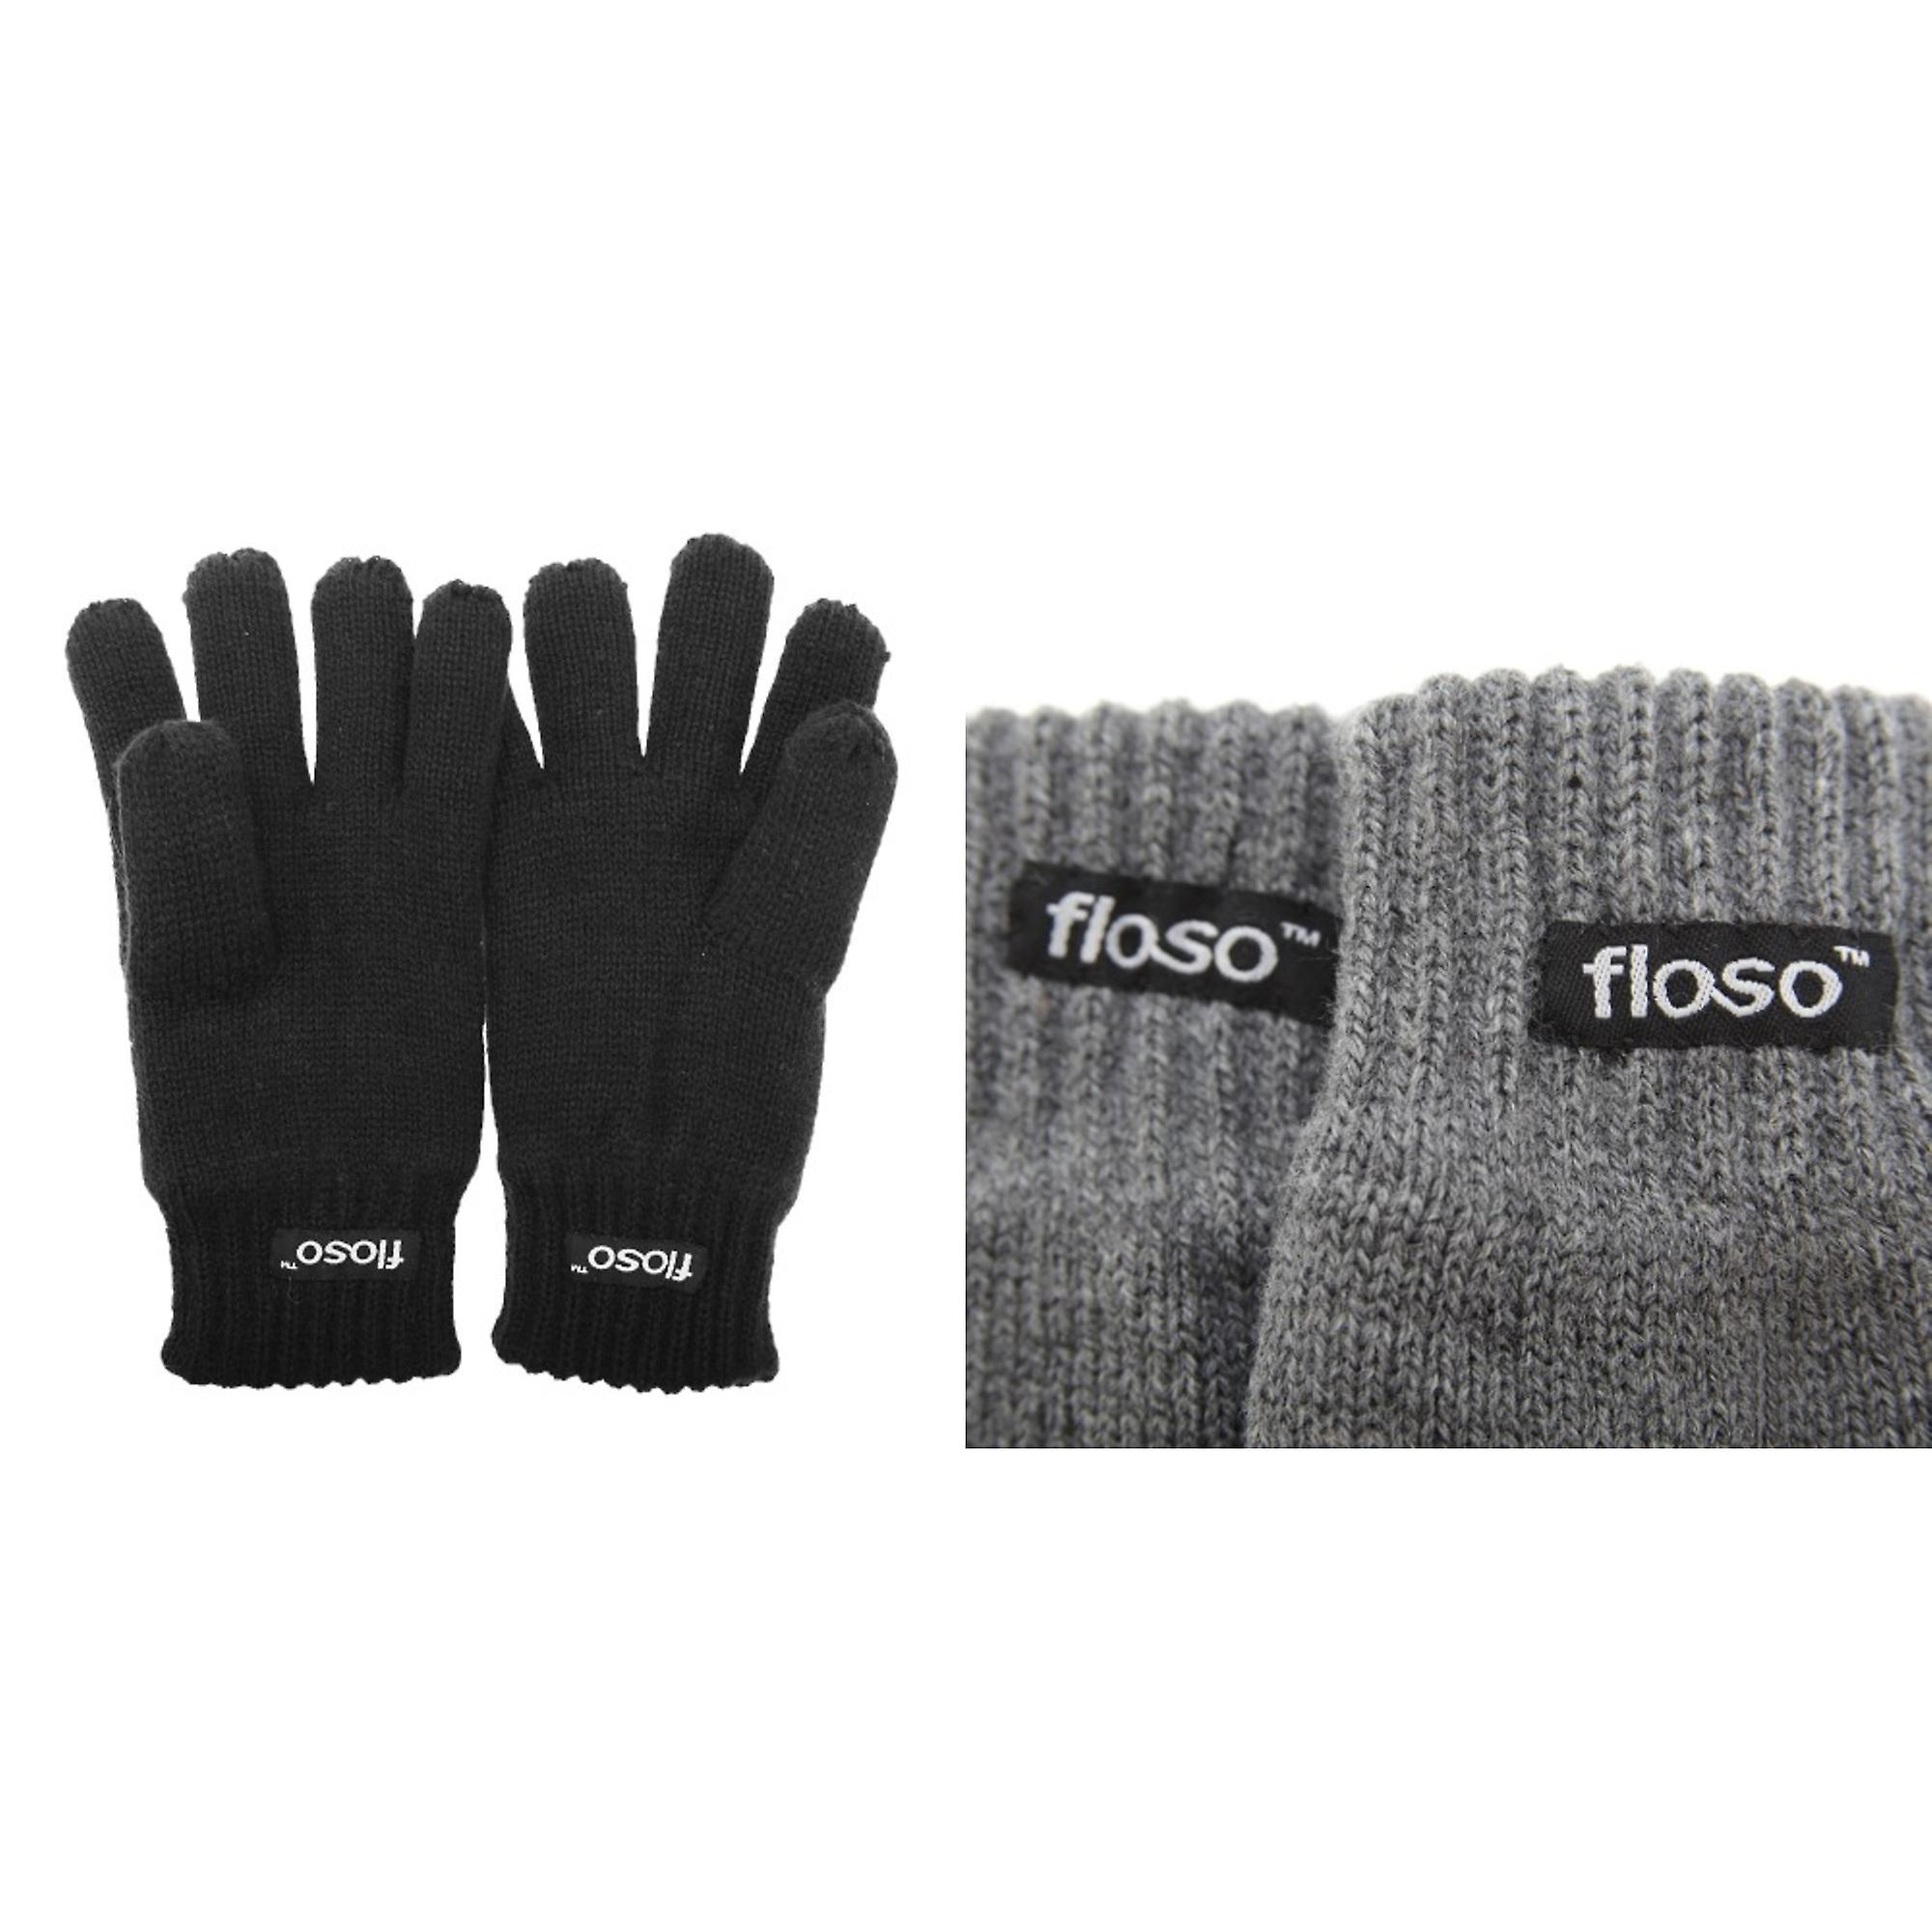 Black 3M 40g 10-11 Years FLOSO Childrens Unisex Knitted Thermal Thinsulate Gloves